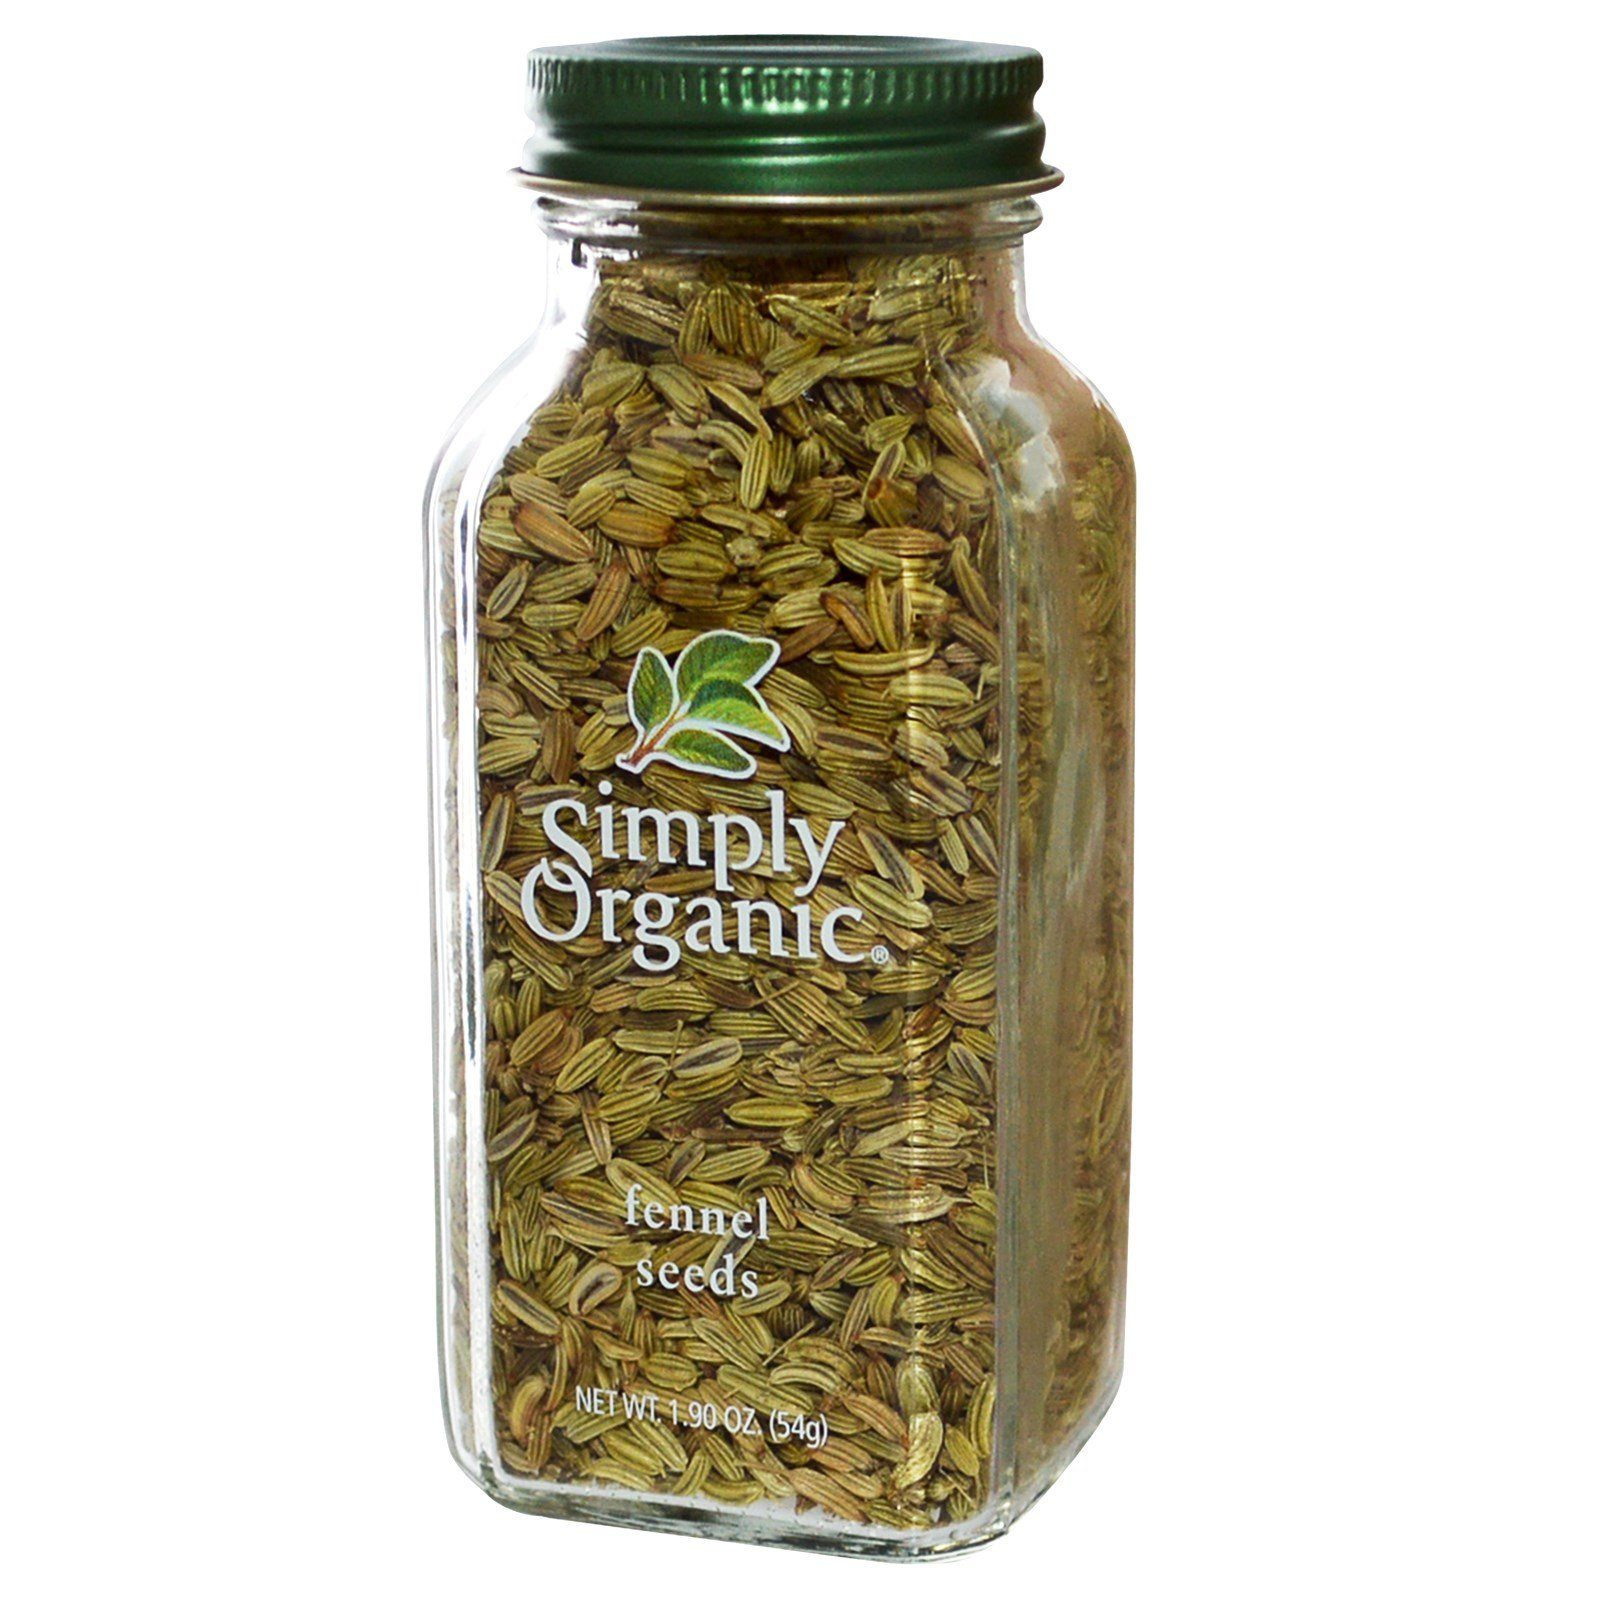 Simply Organic, Fennel Seeds, 1.90 oz (54 g) Simply Organic, Fennel Seeds, 1.90 oz (54 g) - 2pcs